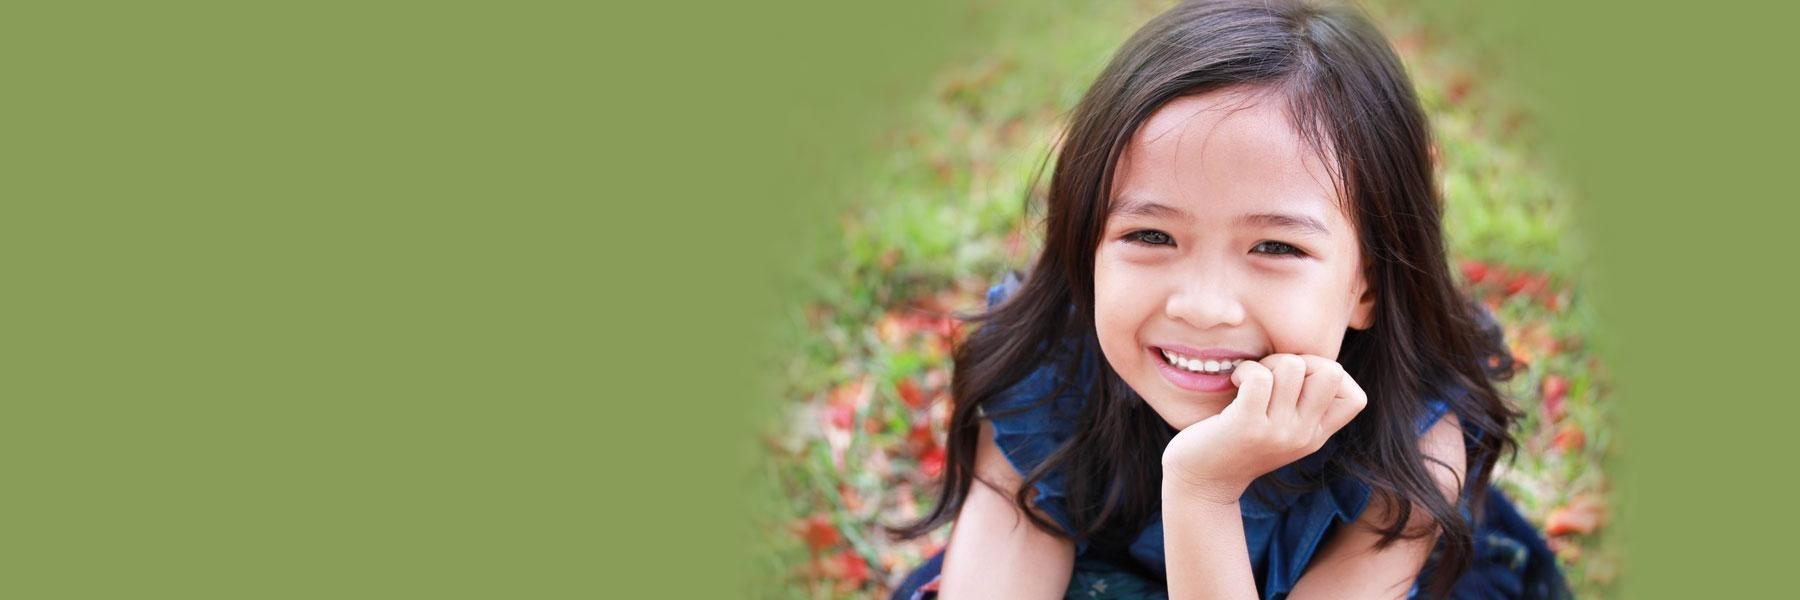 children's dentistry | jonesboro ar | dental solutions